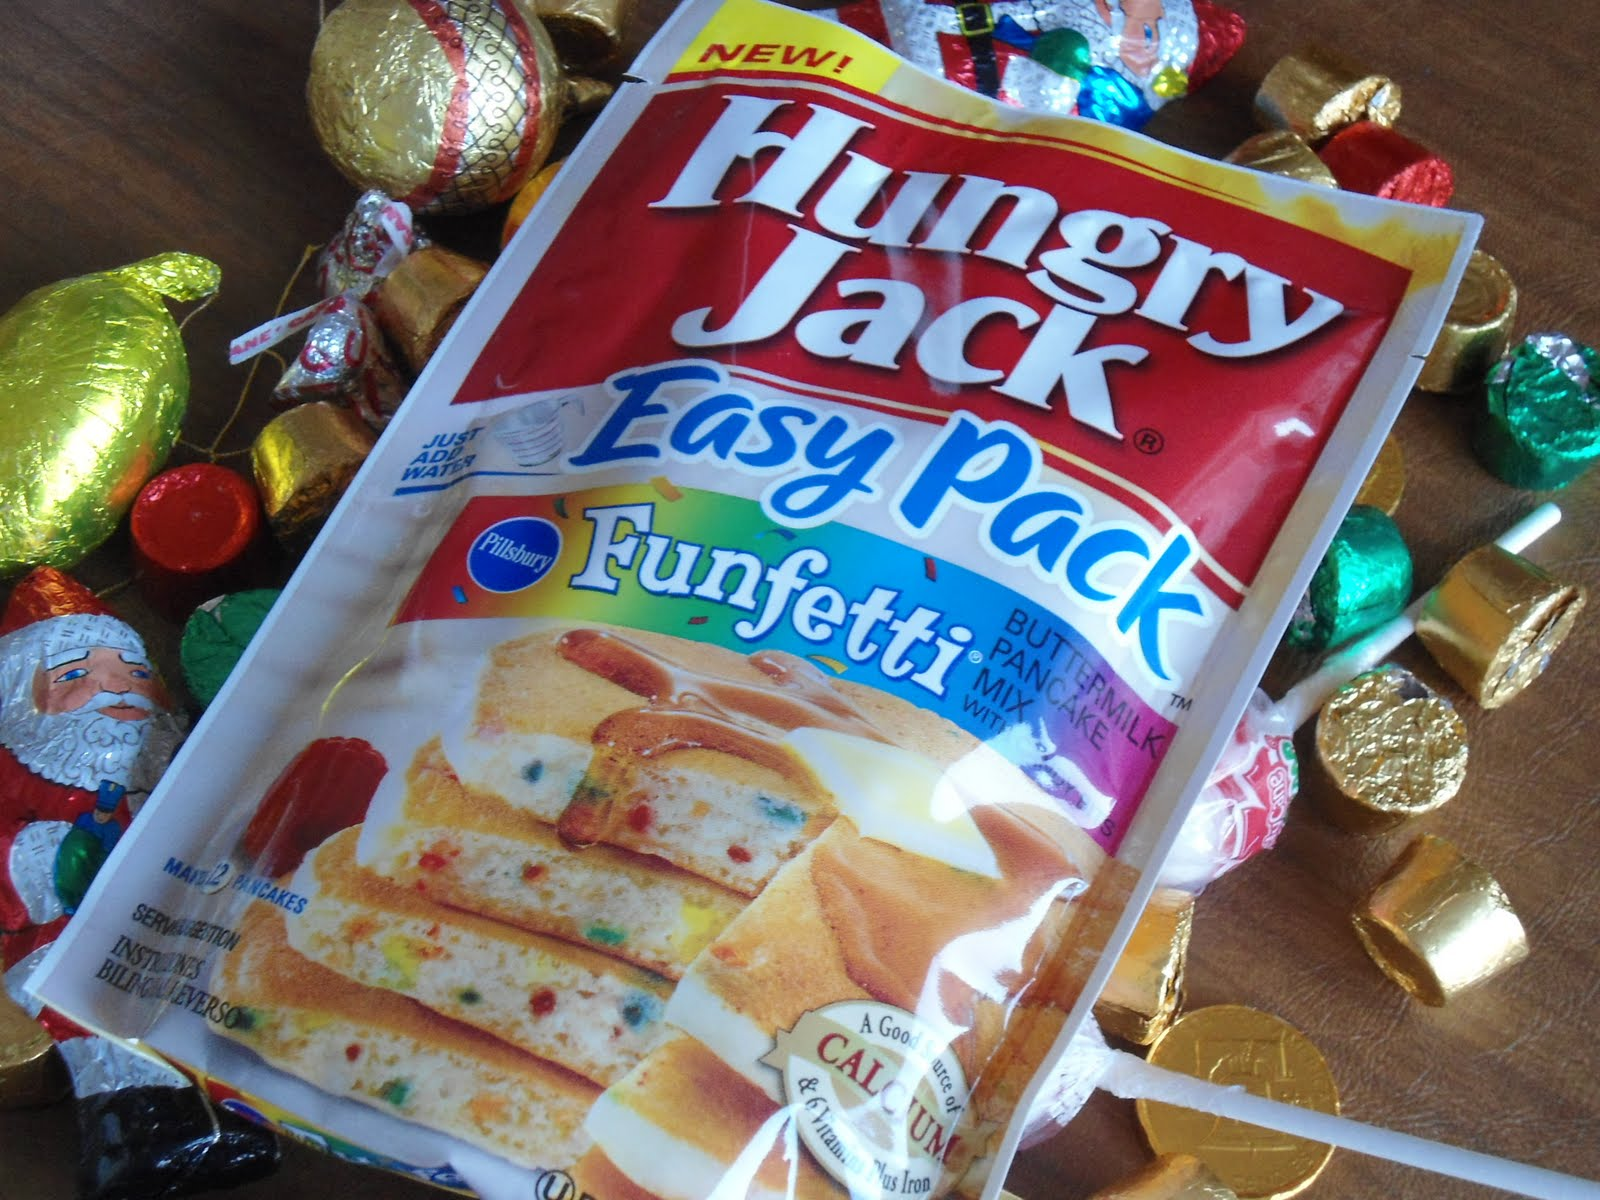 Cuisine around the world hungry jack funfetti buttermilk pancakes hungry jack the company that brought you breakfast by dad on school days when mom was busy and the australian burger king now offers up an easy pack of ccuart Gallery